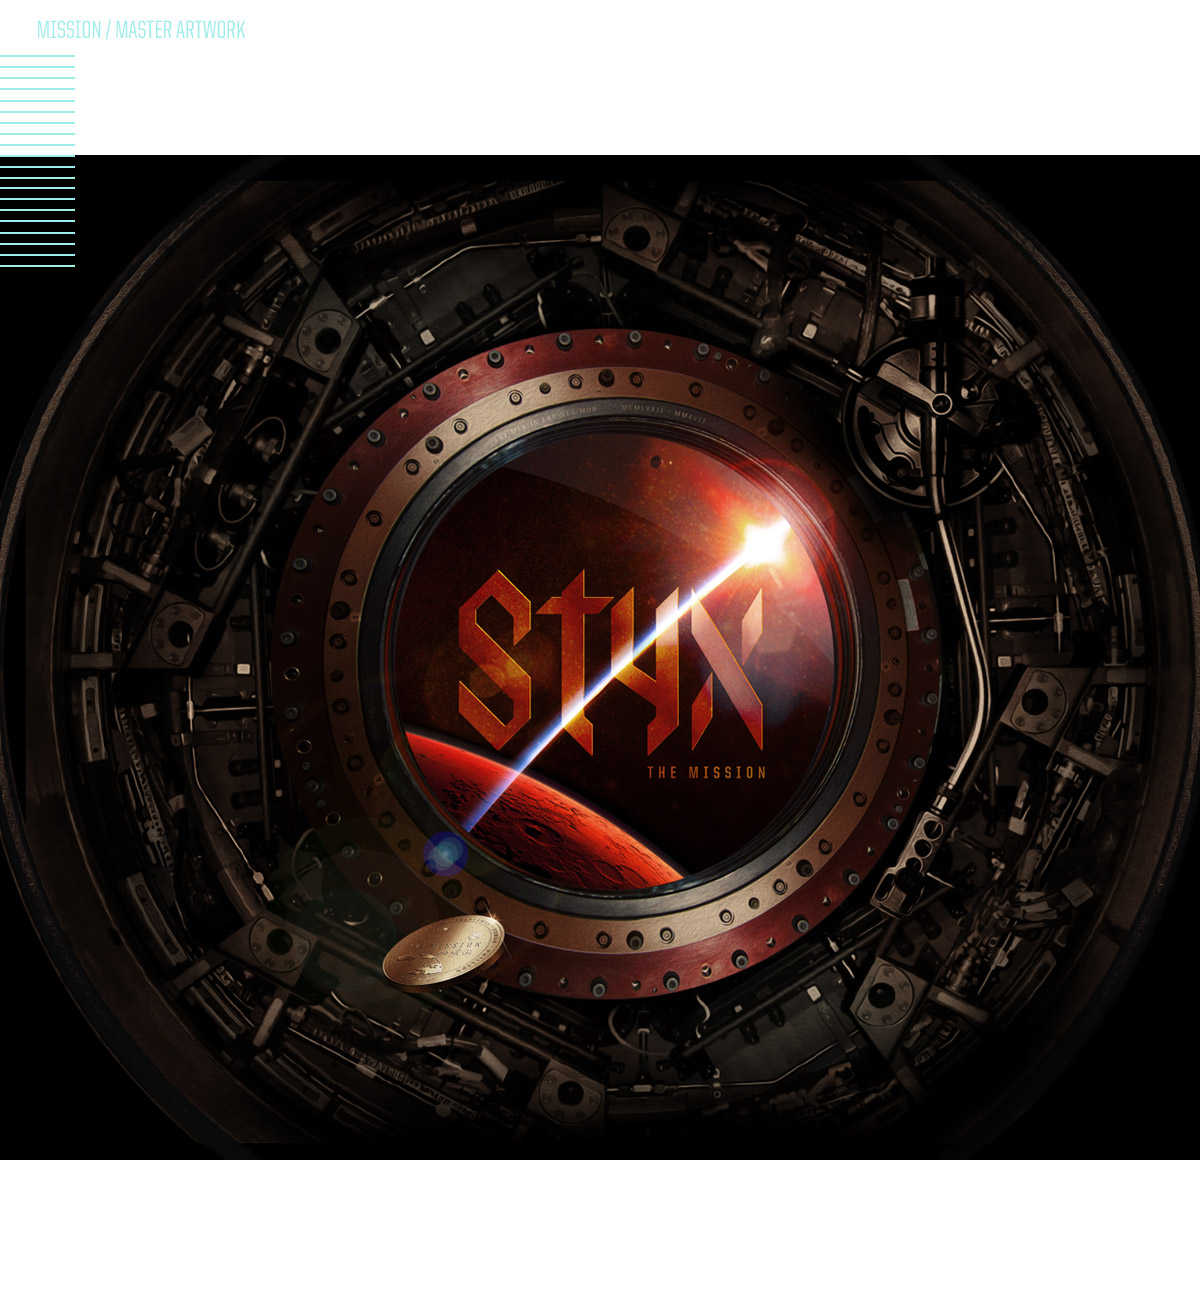 Styx / The Mission - Music - Projects - Meat and Potatoes